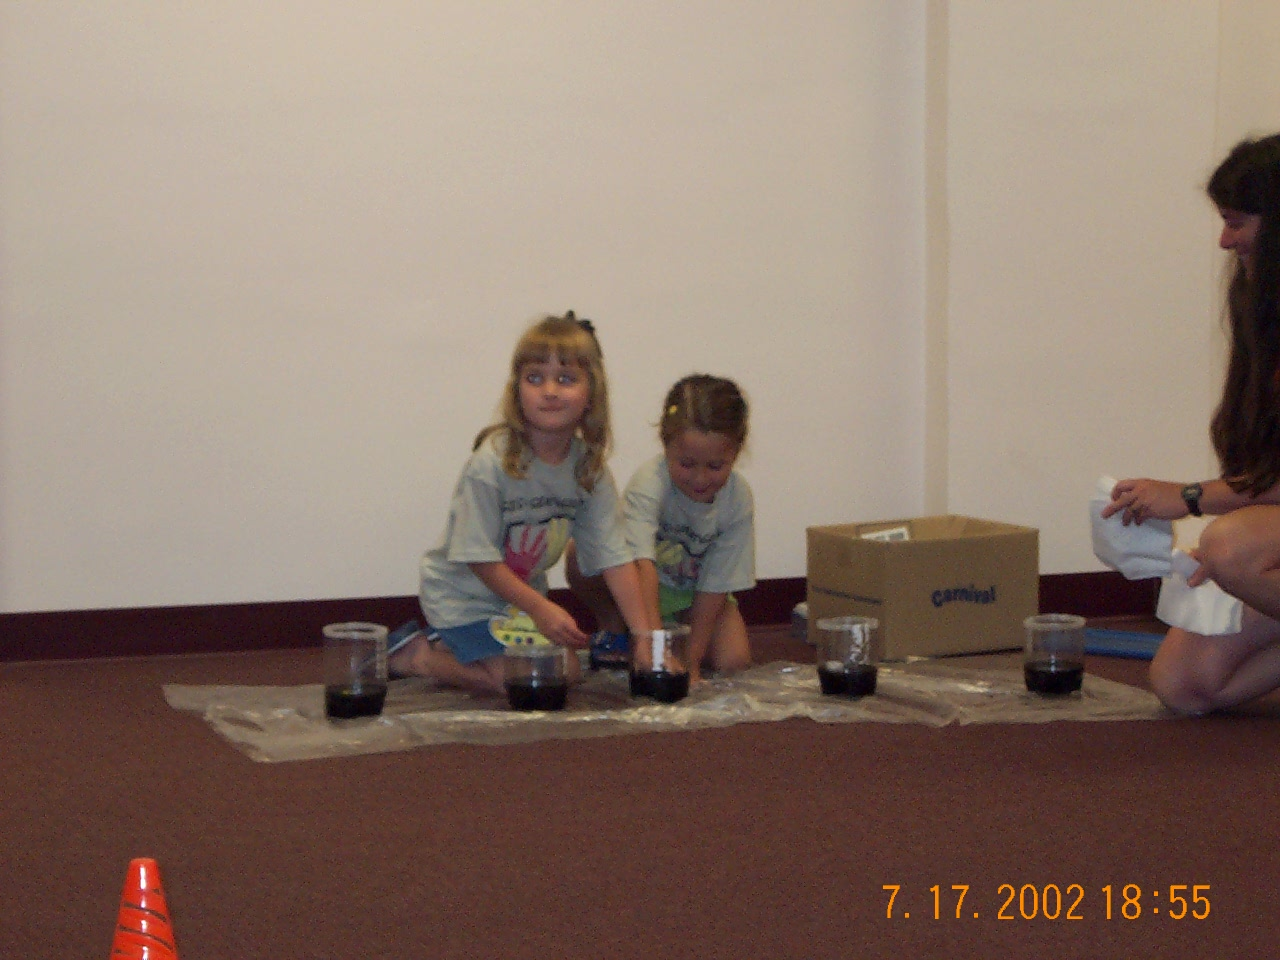 Delightful Churches In Macomb Il #1: 2002VBS06.JPG